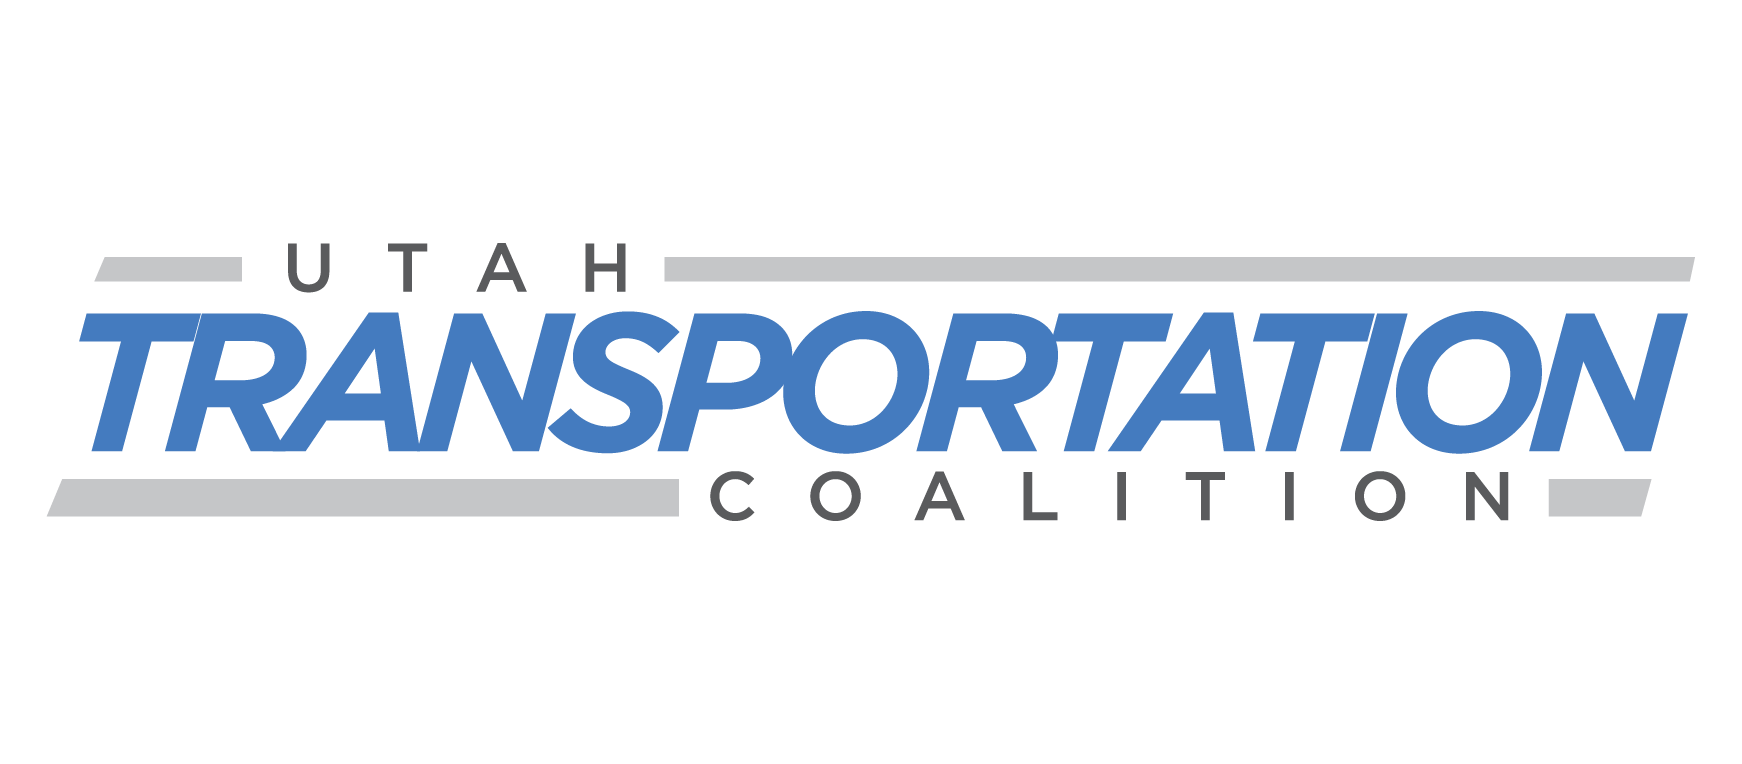 Get to Know the New Utah Transportation Coalition Co-Chairs